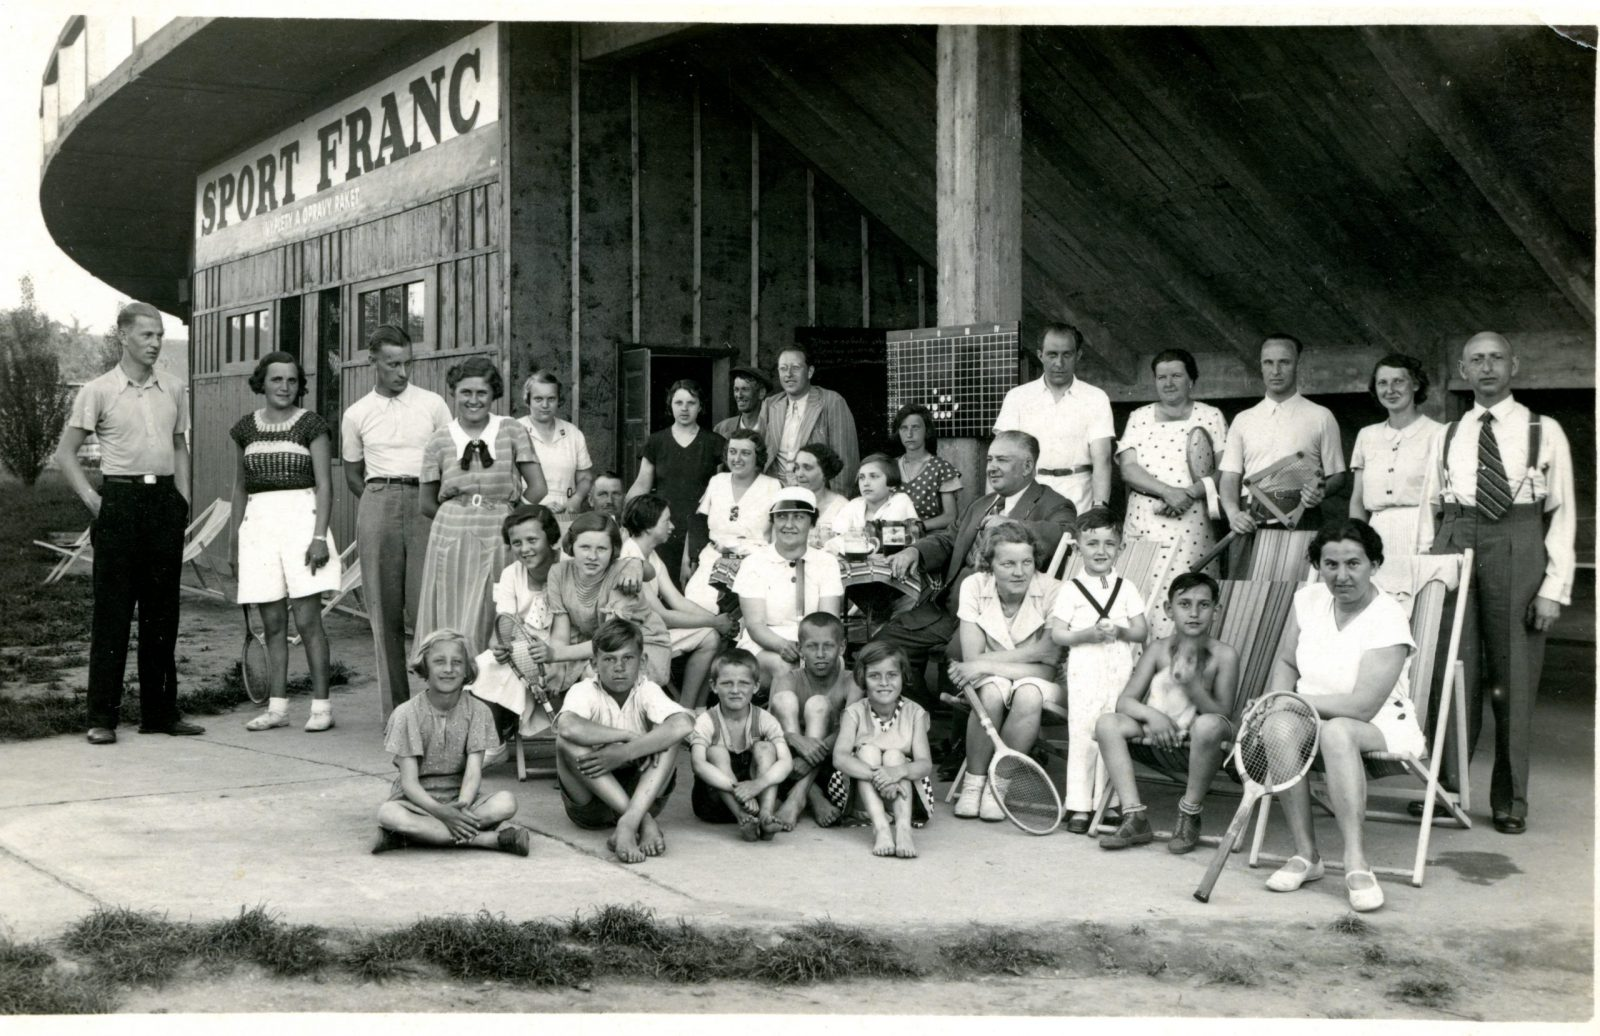 Tennis club in Pardubice before German occupation